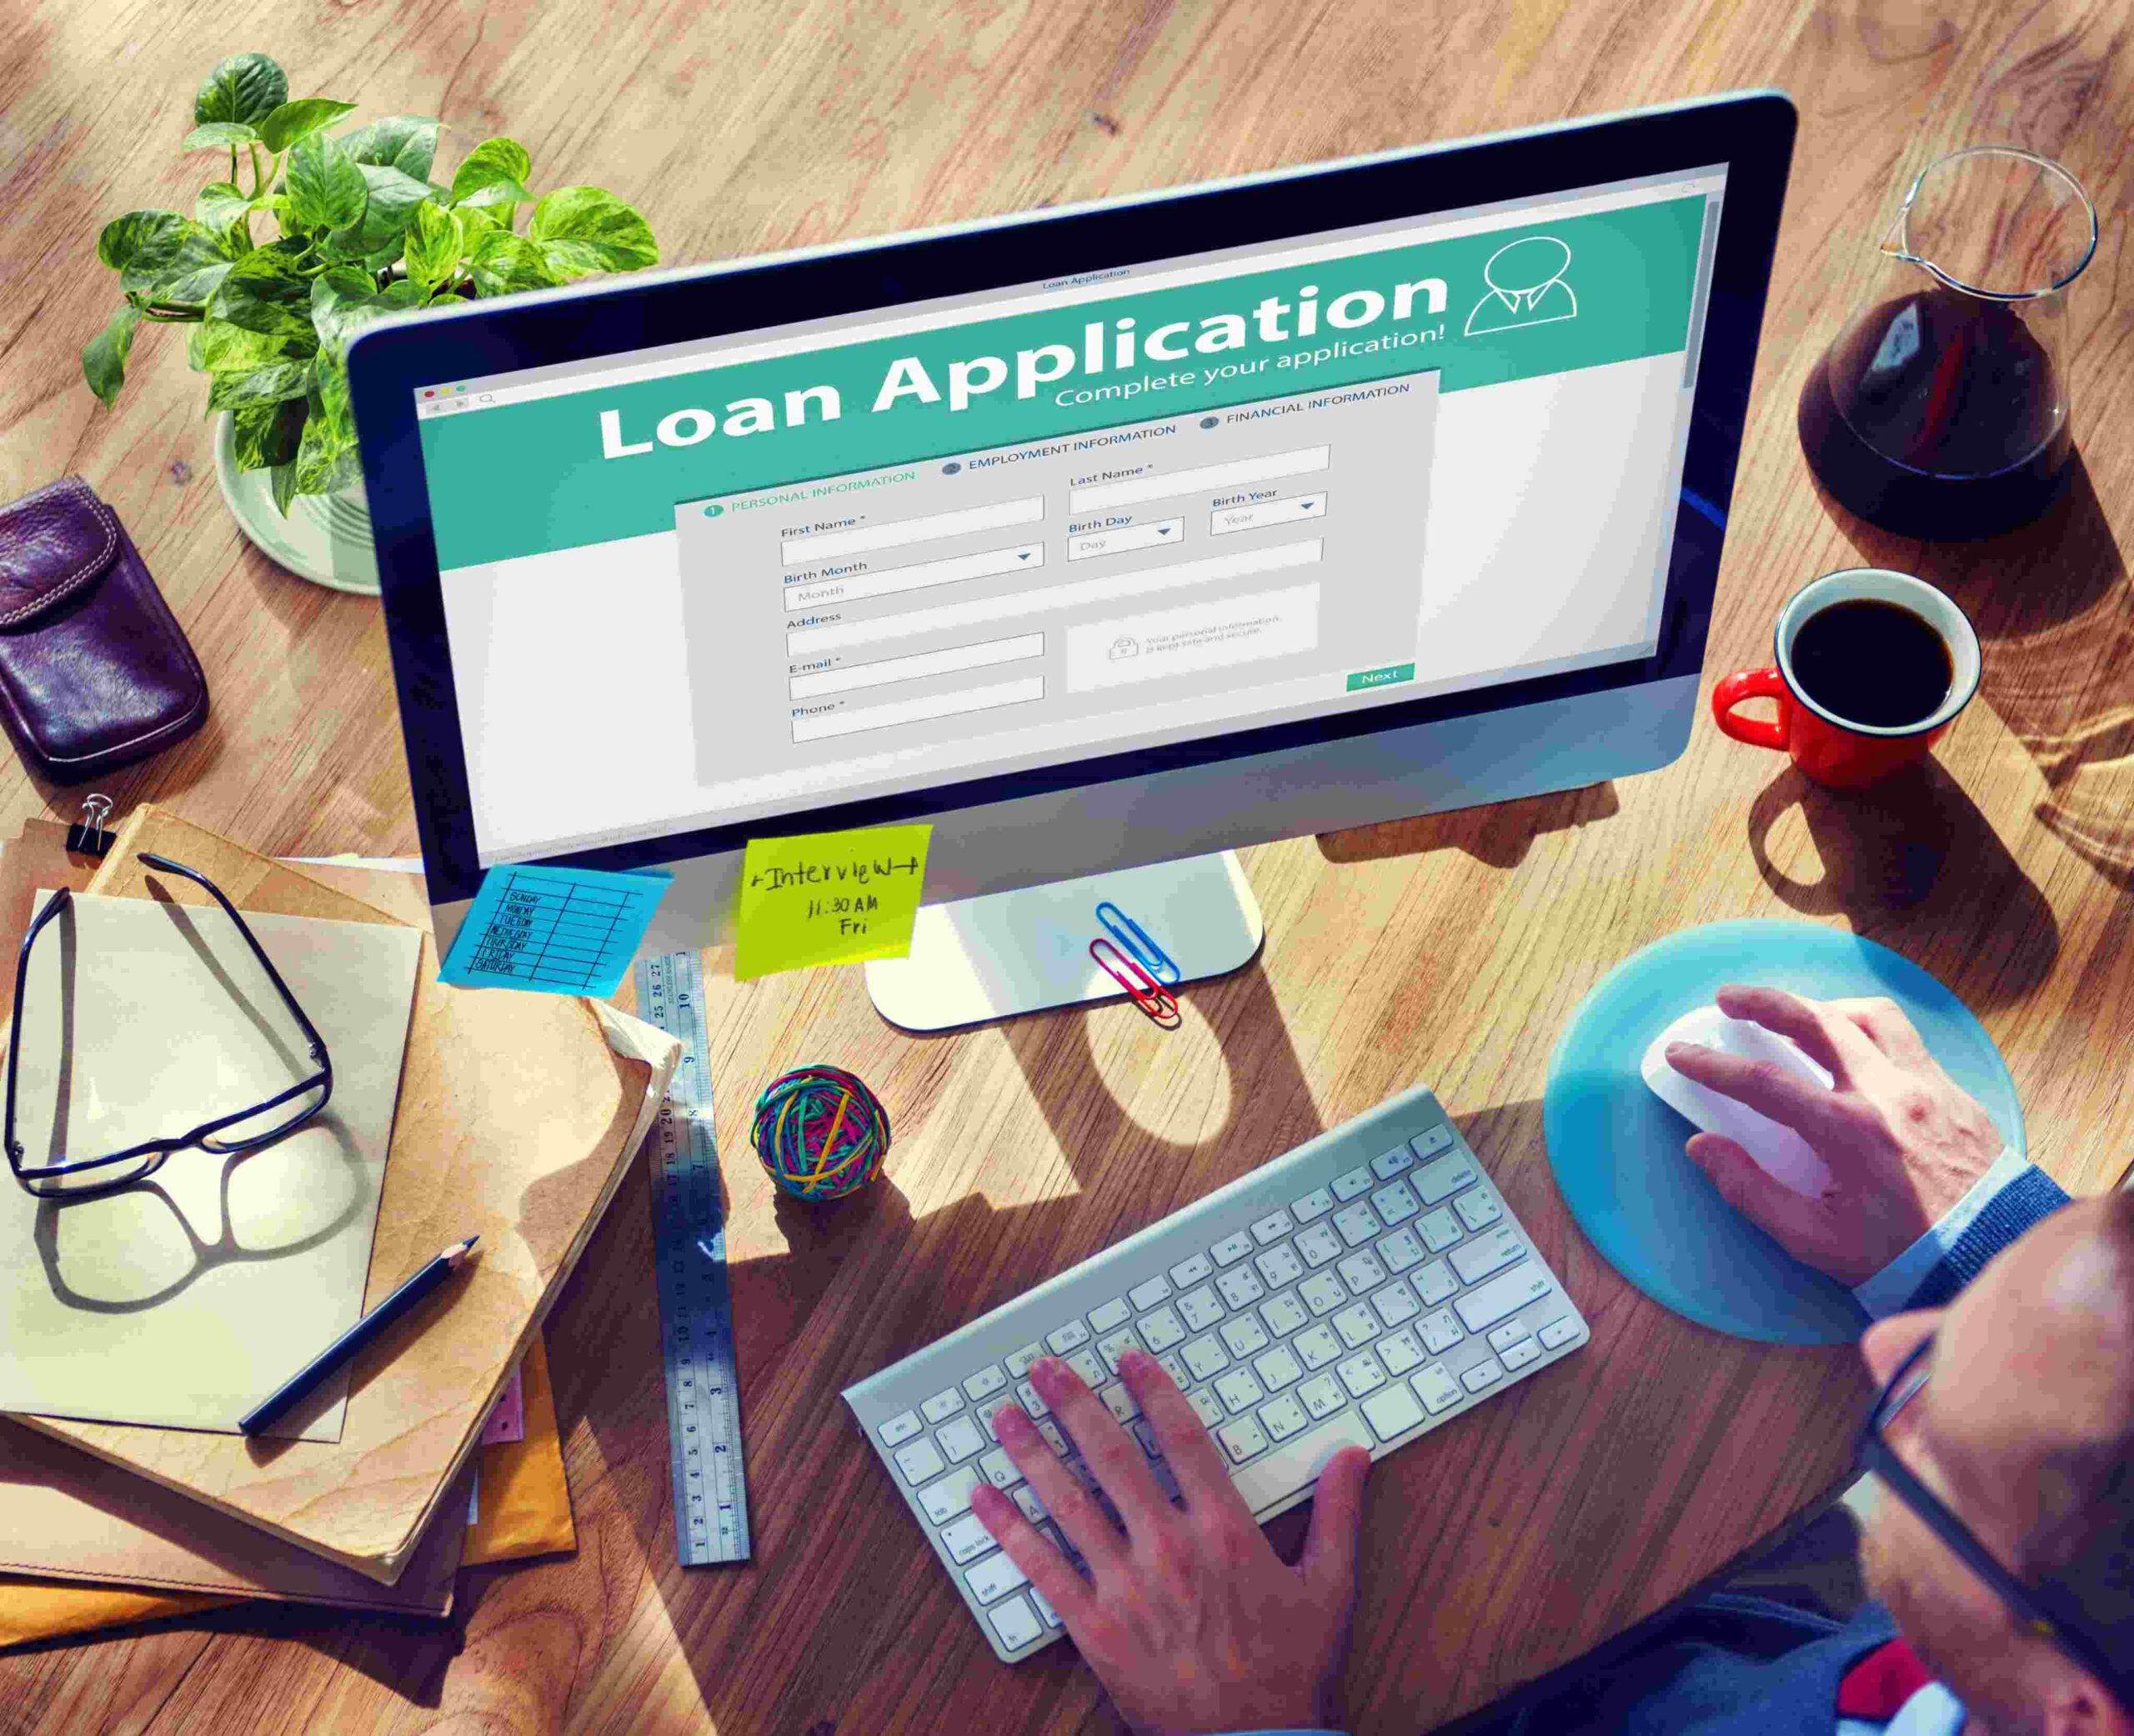 What Are The Benefits Of Instant Online Loans